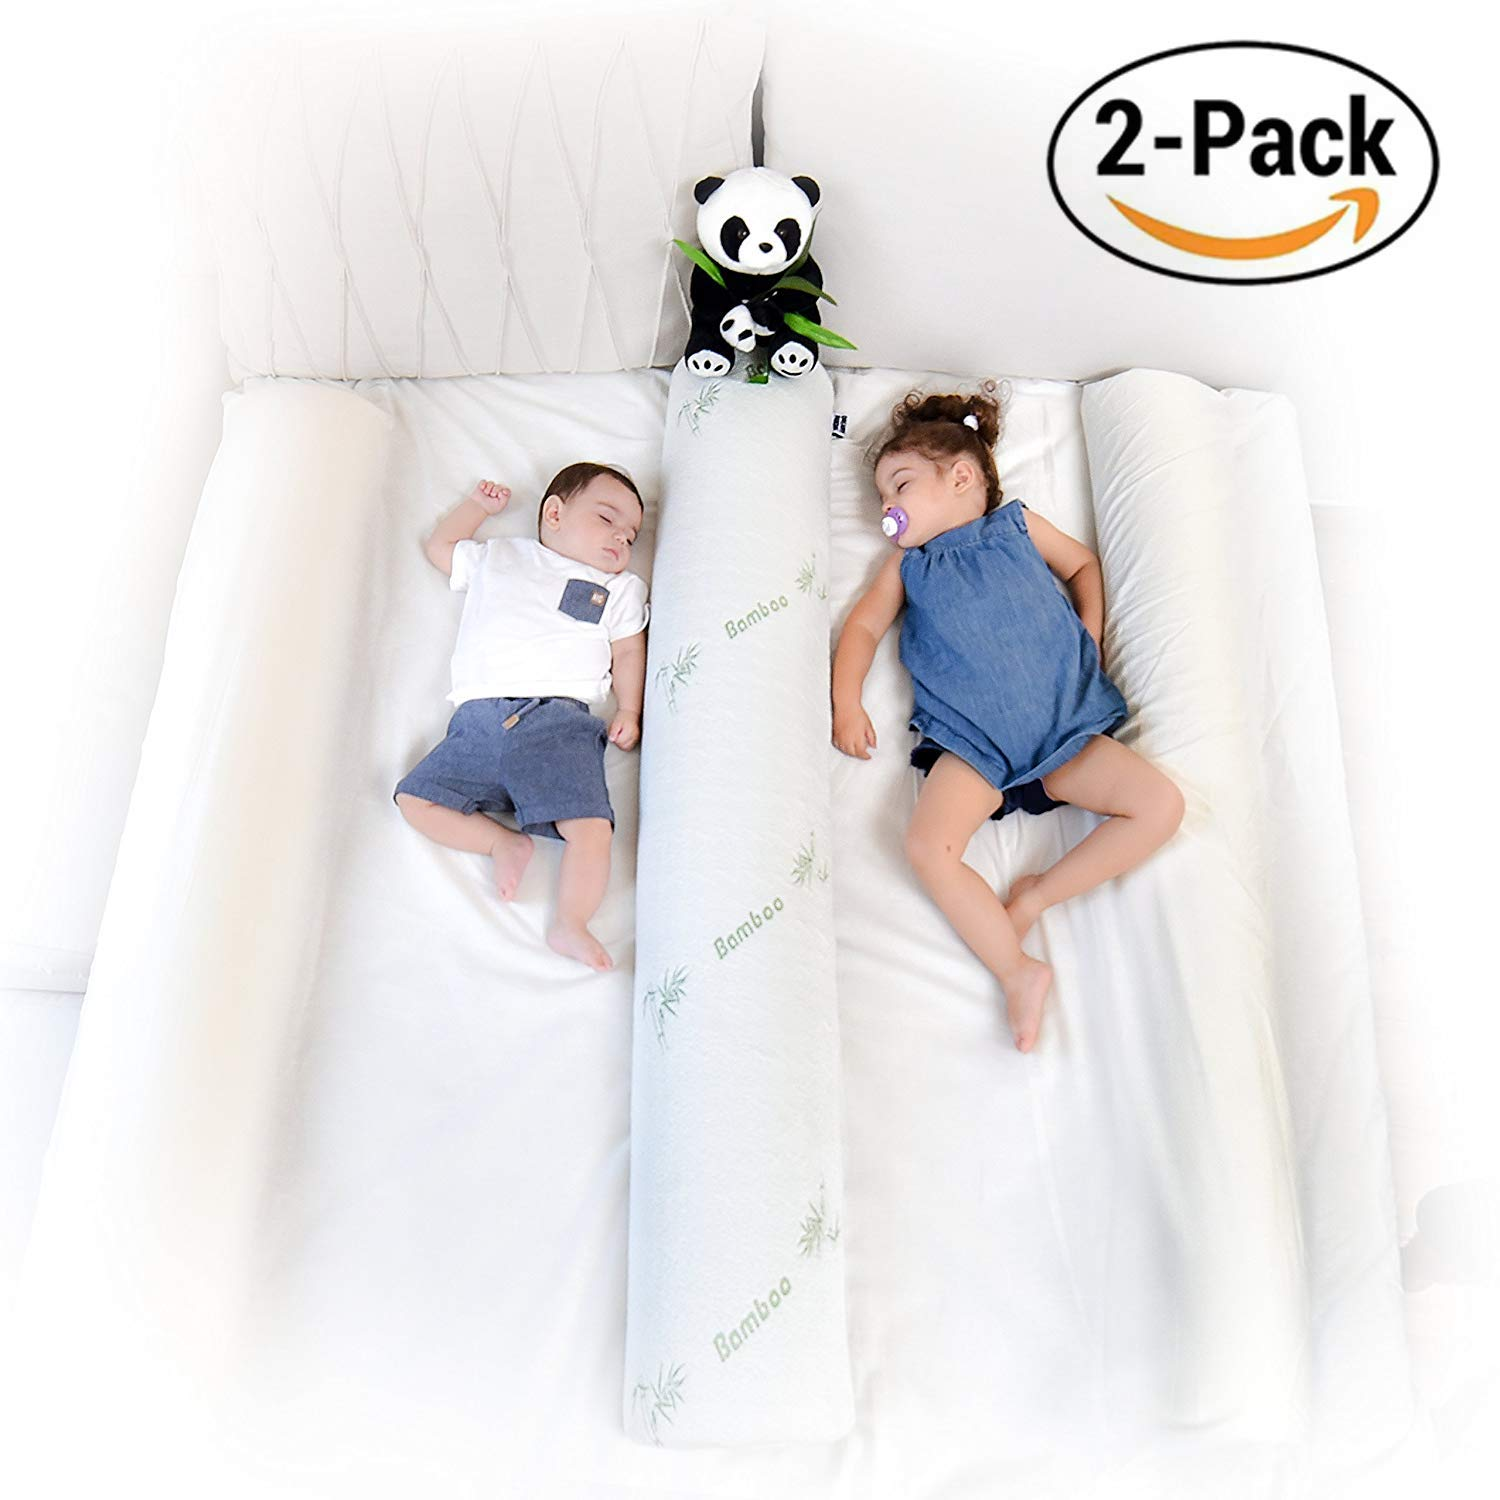 DreamyPanda Toddler Bed Rail Bumper/Foam Guard for Bed - Large - Side Rail with Bamboo Cover - Pillow Pad for Toddlers, Kids [2-Pack - White Bamboo]